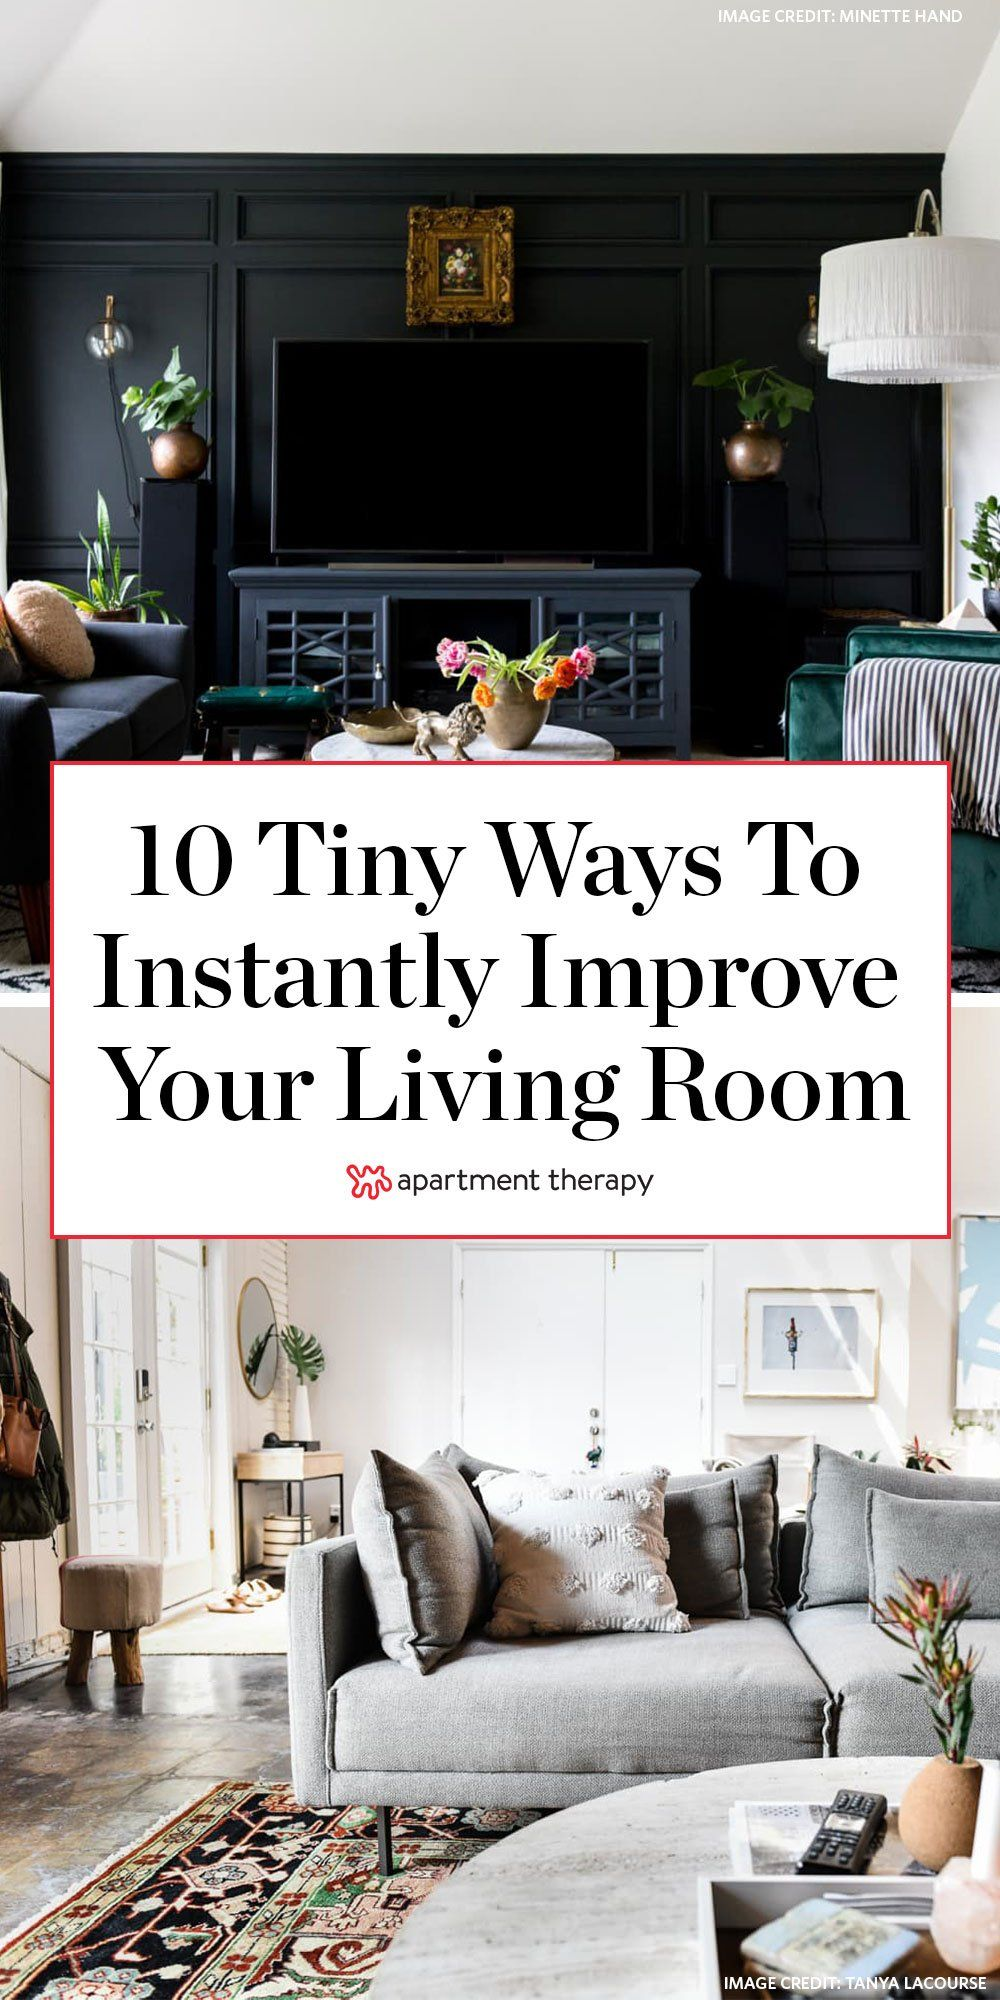 10 Teeny Tiny Things Apartment Therapy Editors Did To Immedia